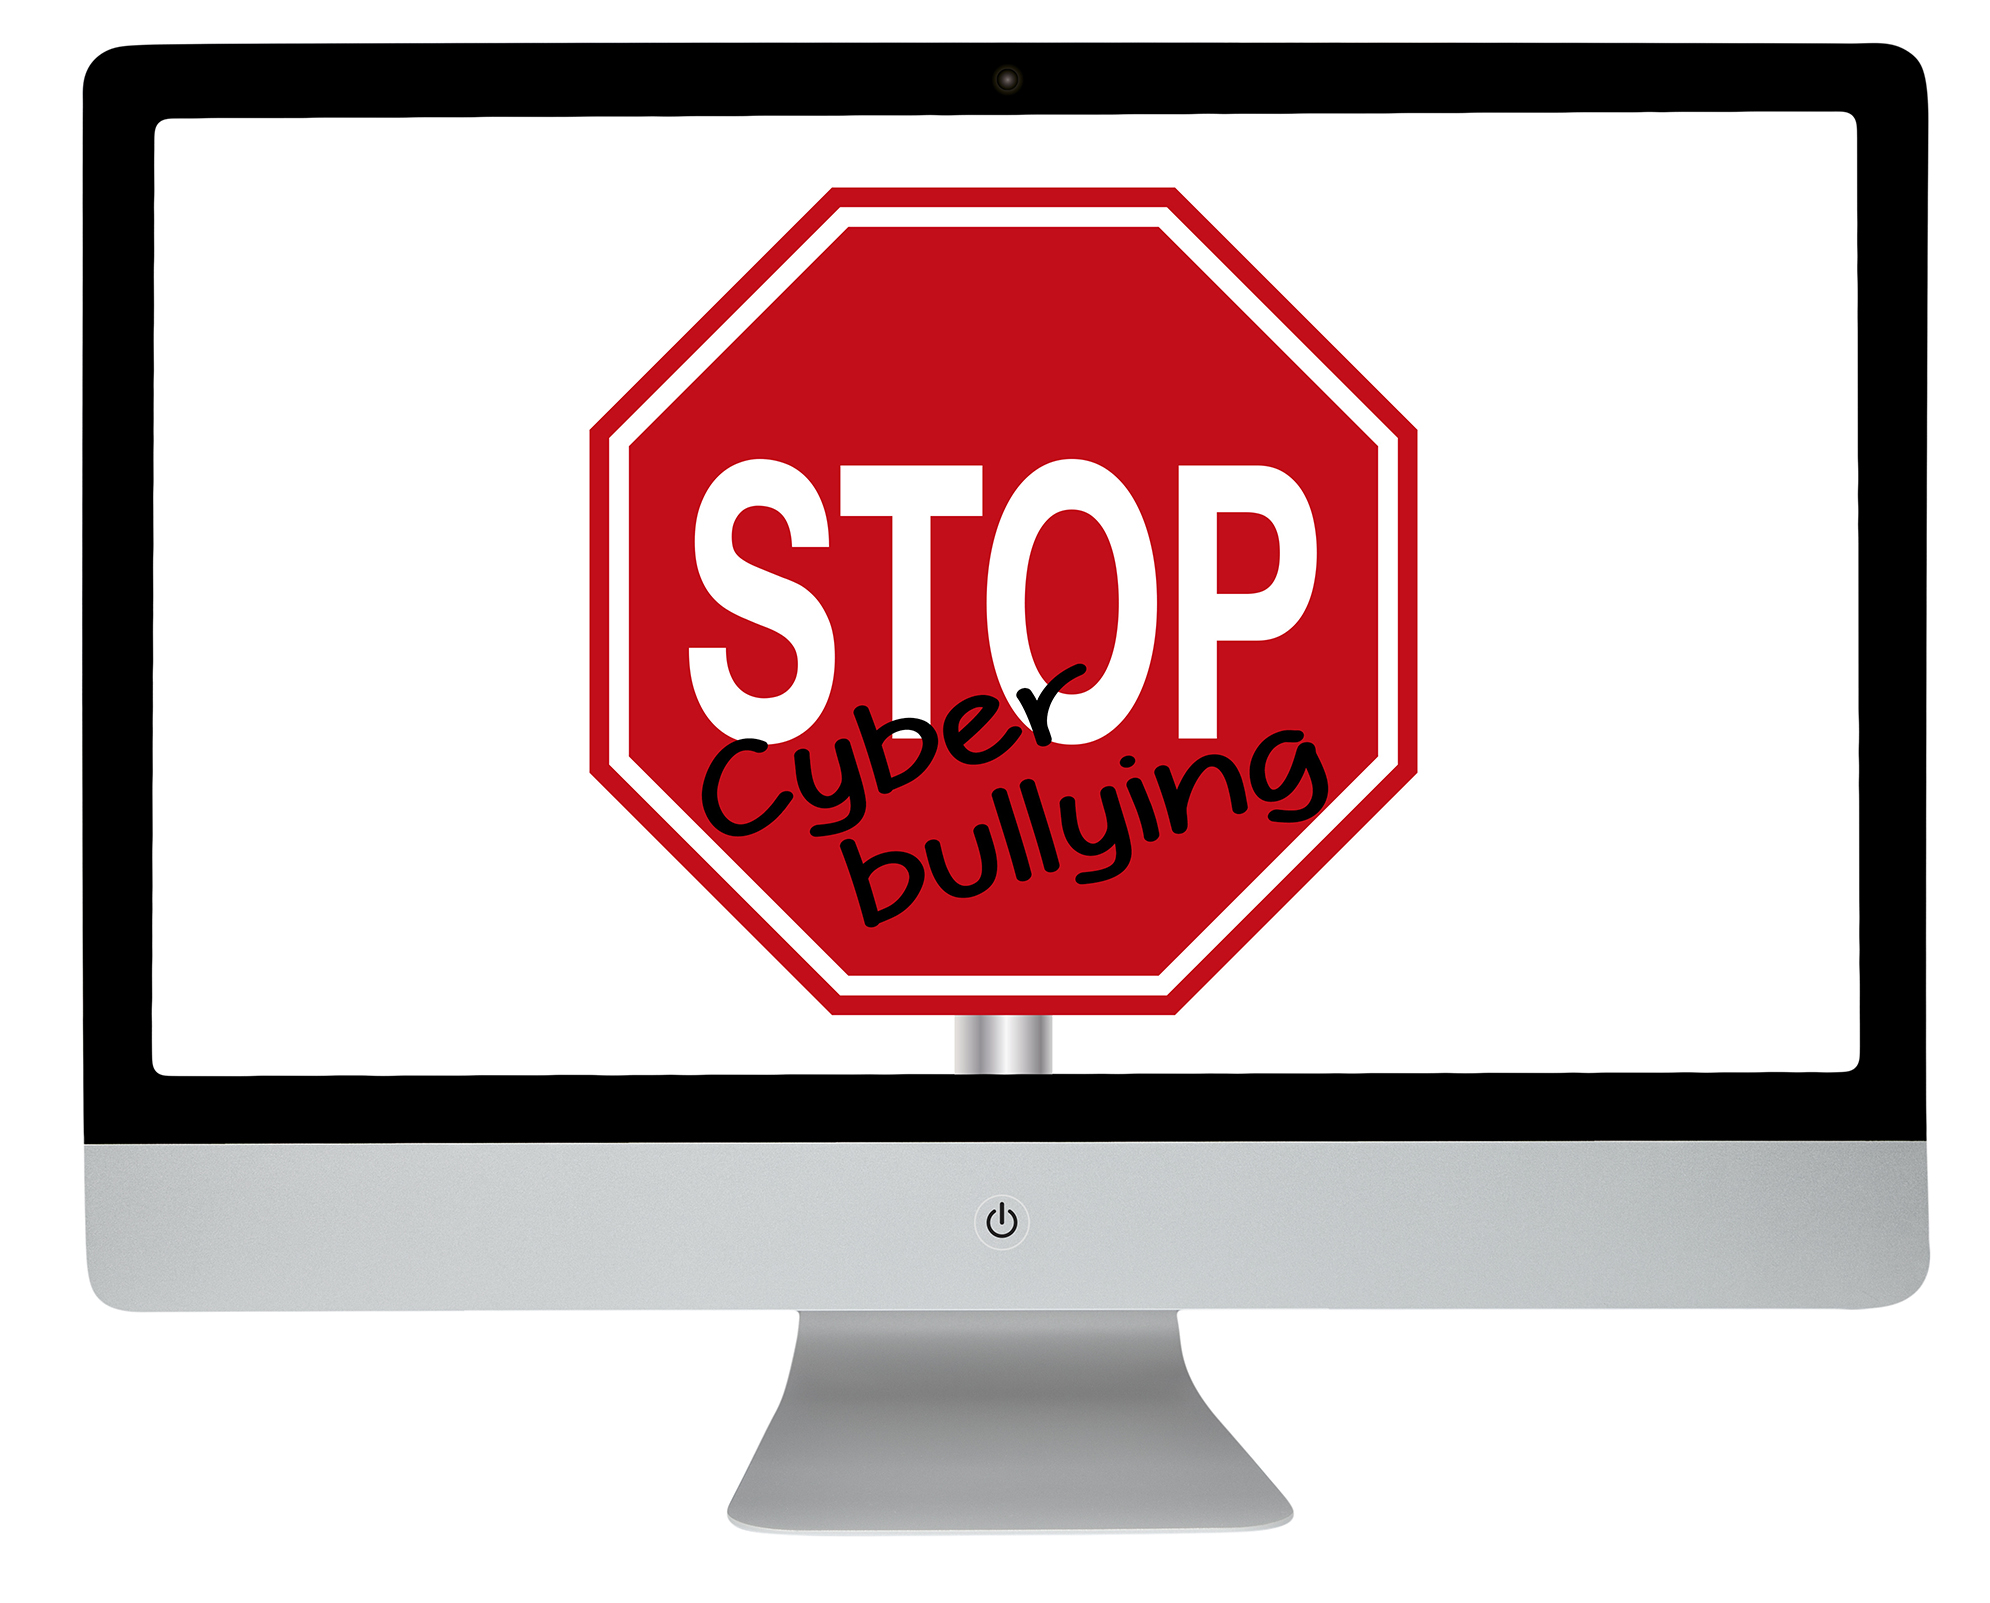 Bully clipart threat. What do i if